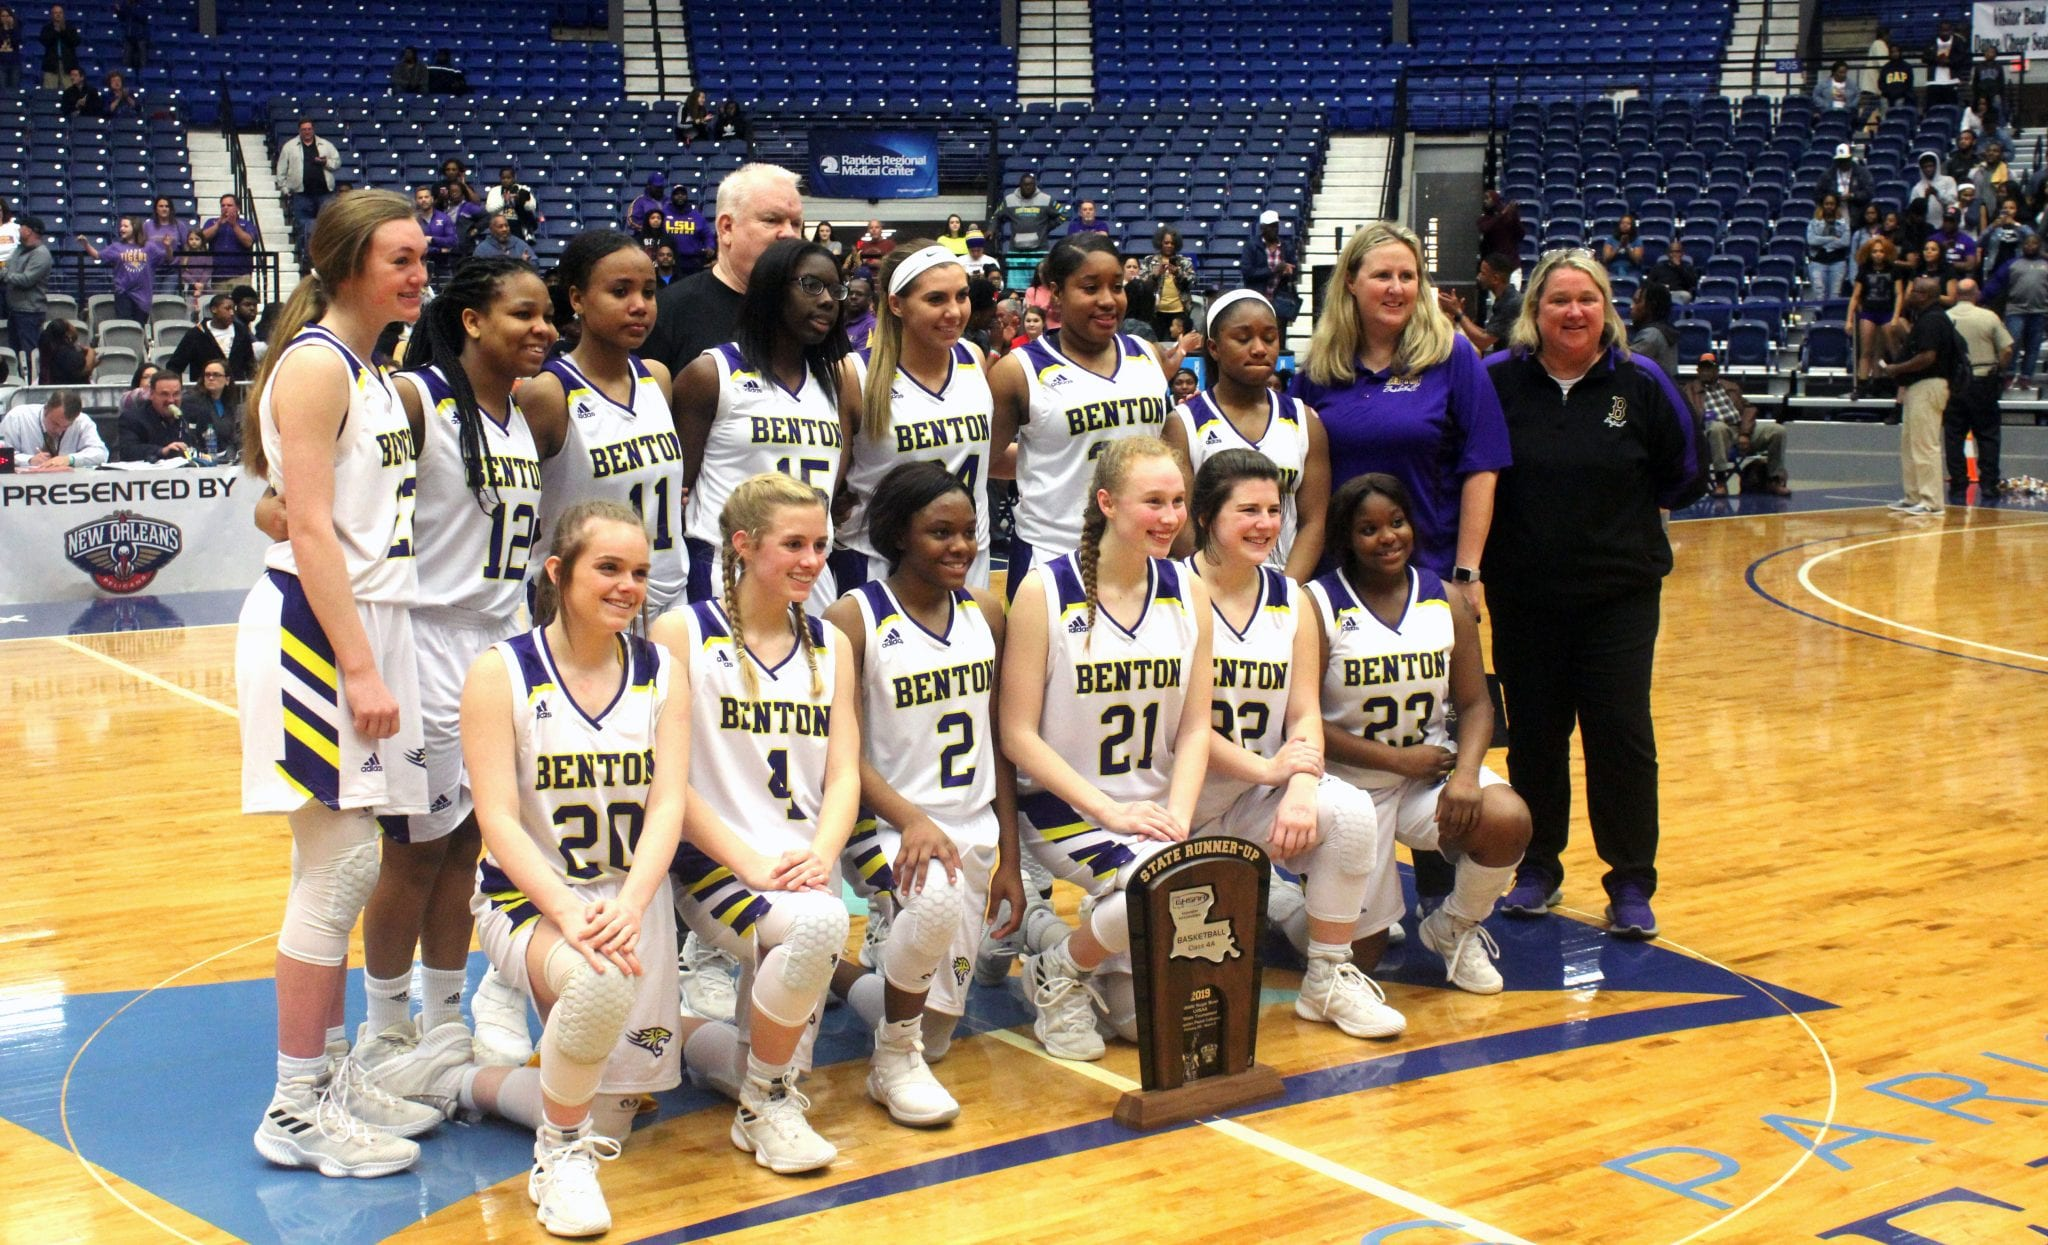 There s no doubt it ll take awhile for the sting of Friday night s 58-49  loss to Warren Easton in the Class 4A state championship game in Alexandria  to wear ... 5416b7018f3b